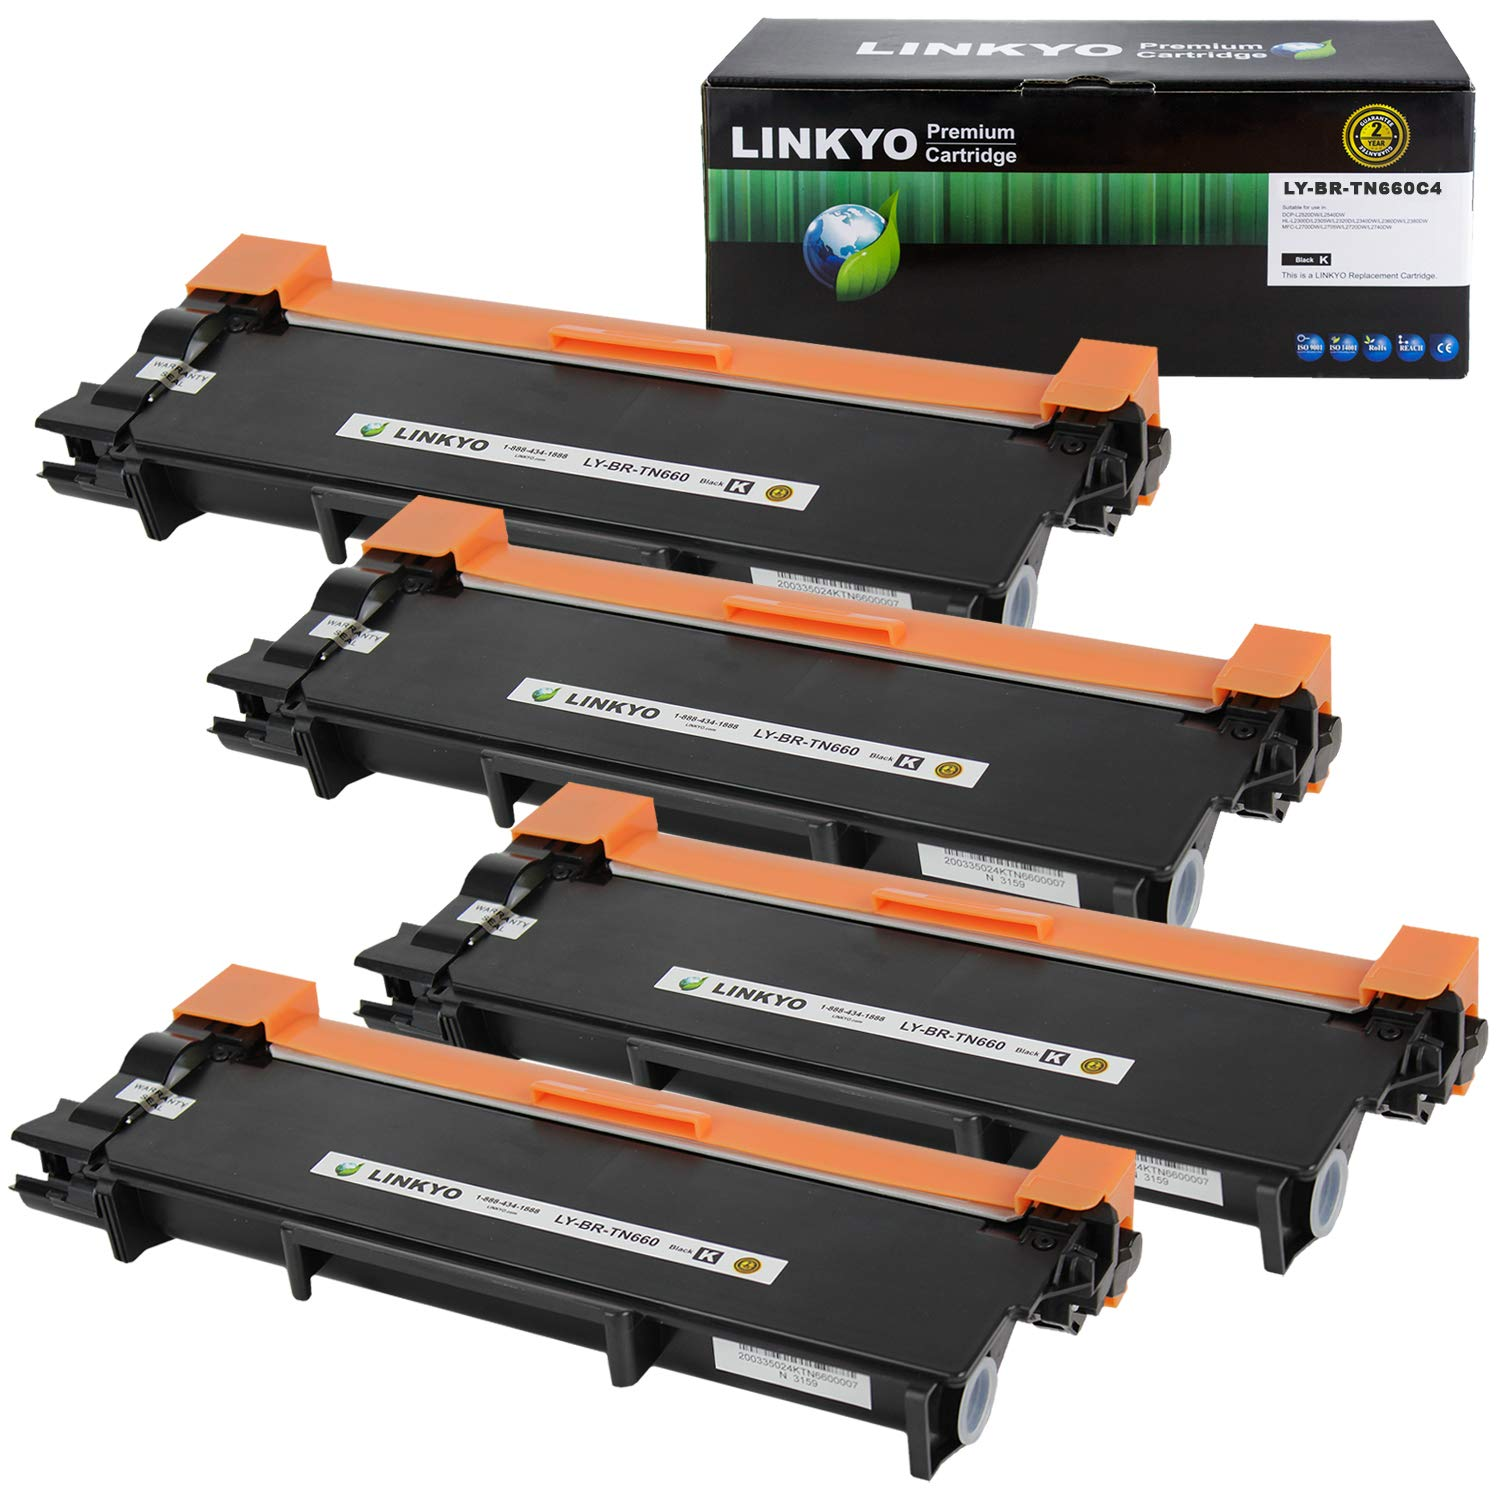 2 Black Valuetoner Compatible Toner Cartridge Replacement for Brother TN660 TN-660 TN630 TN-630 High Yield